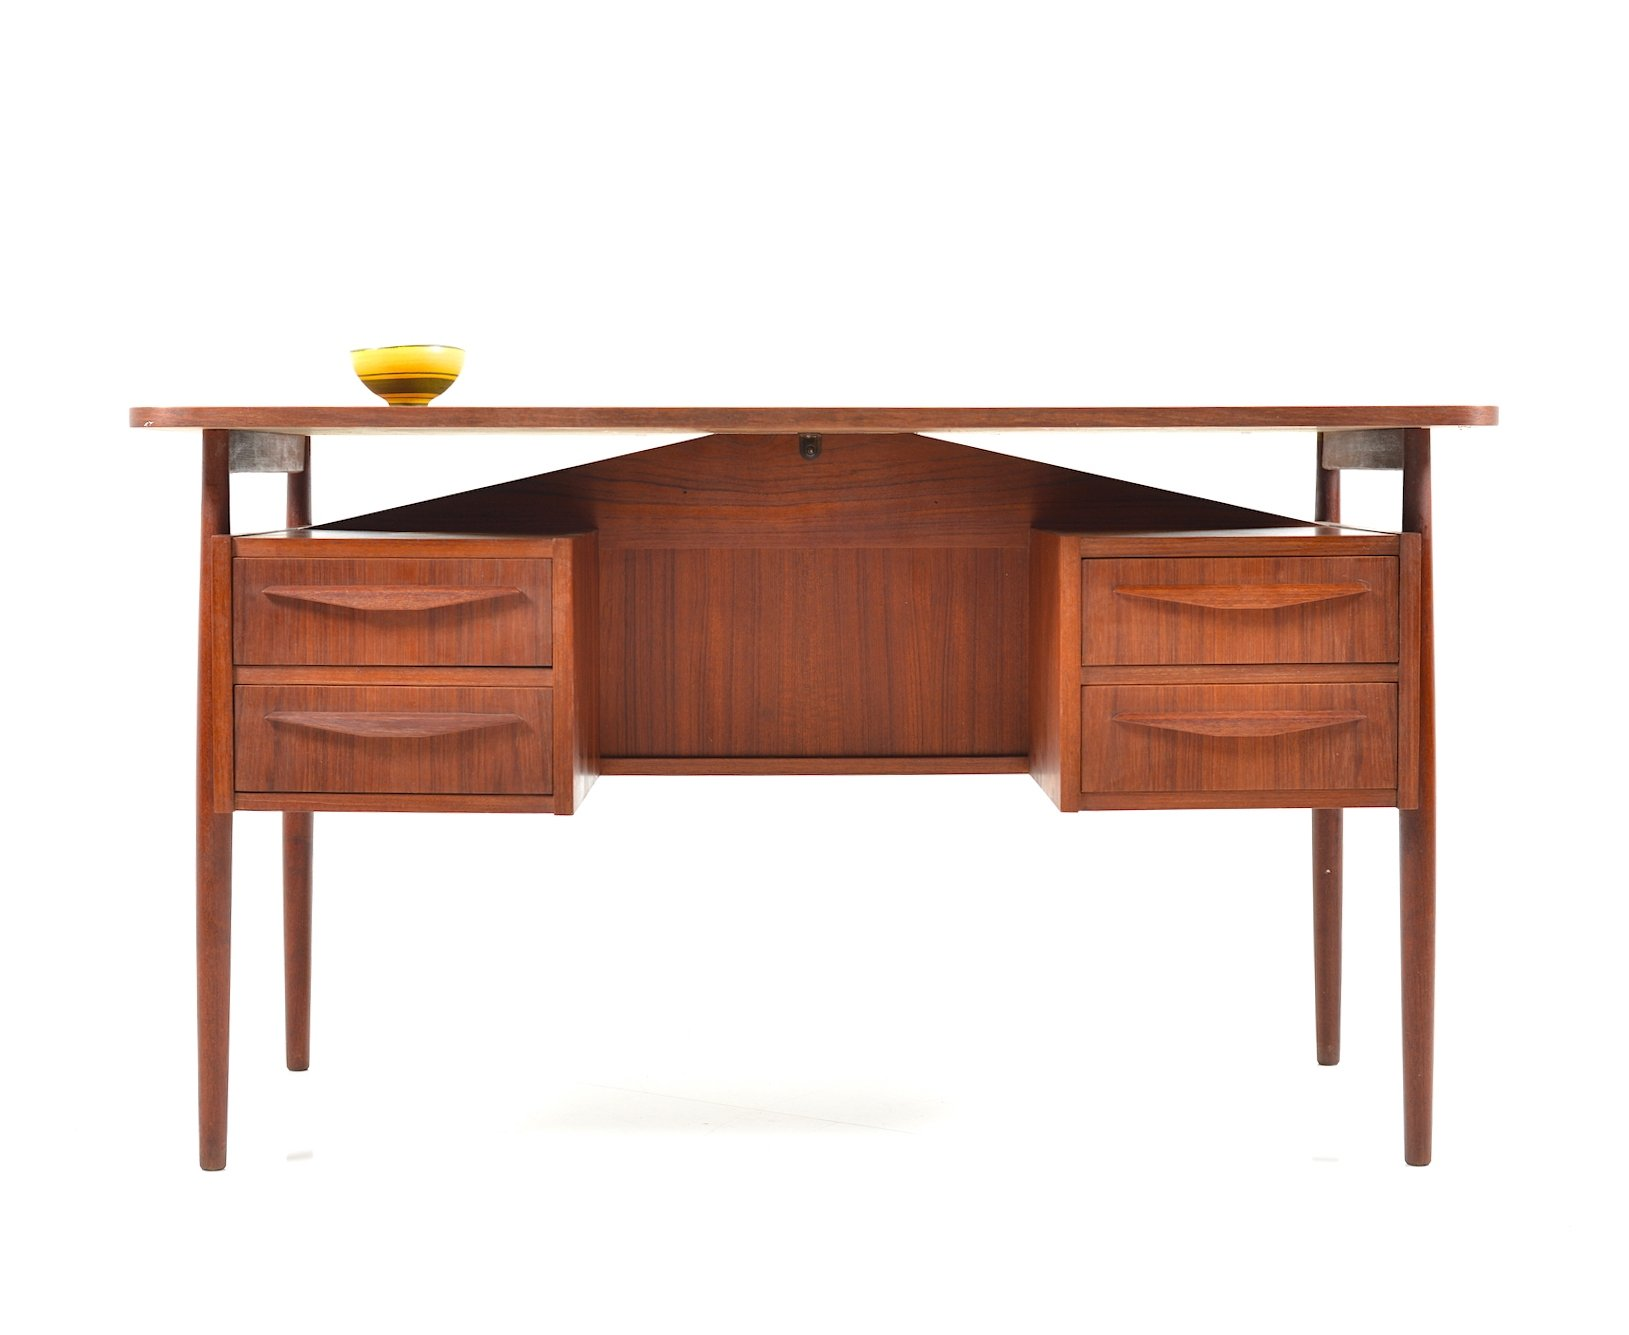 with a in desk solid wood pin modern this is featured finish danish teak vibrant gorgeous